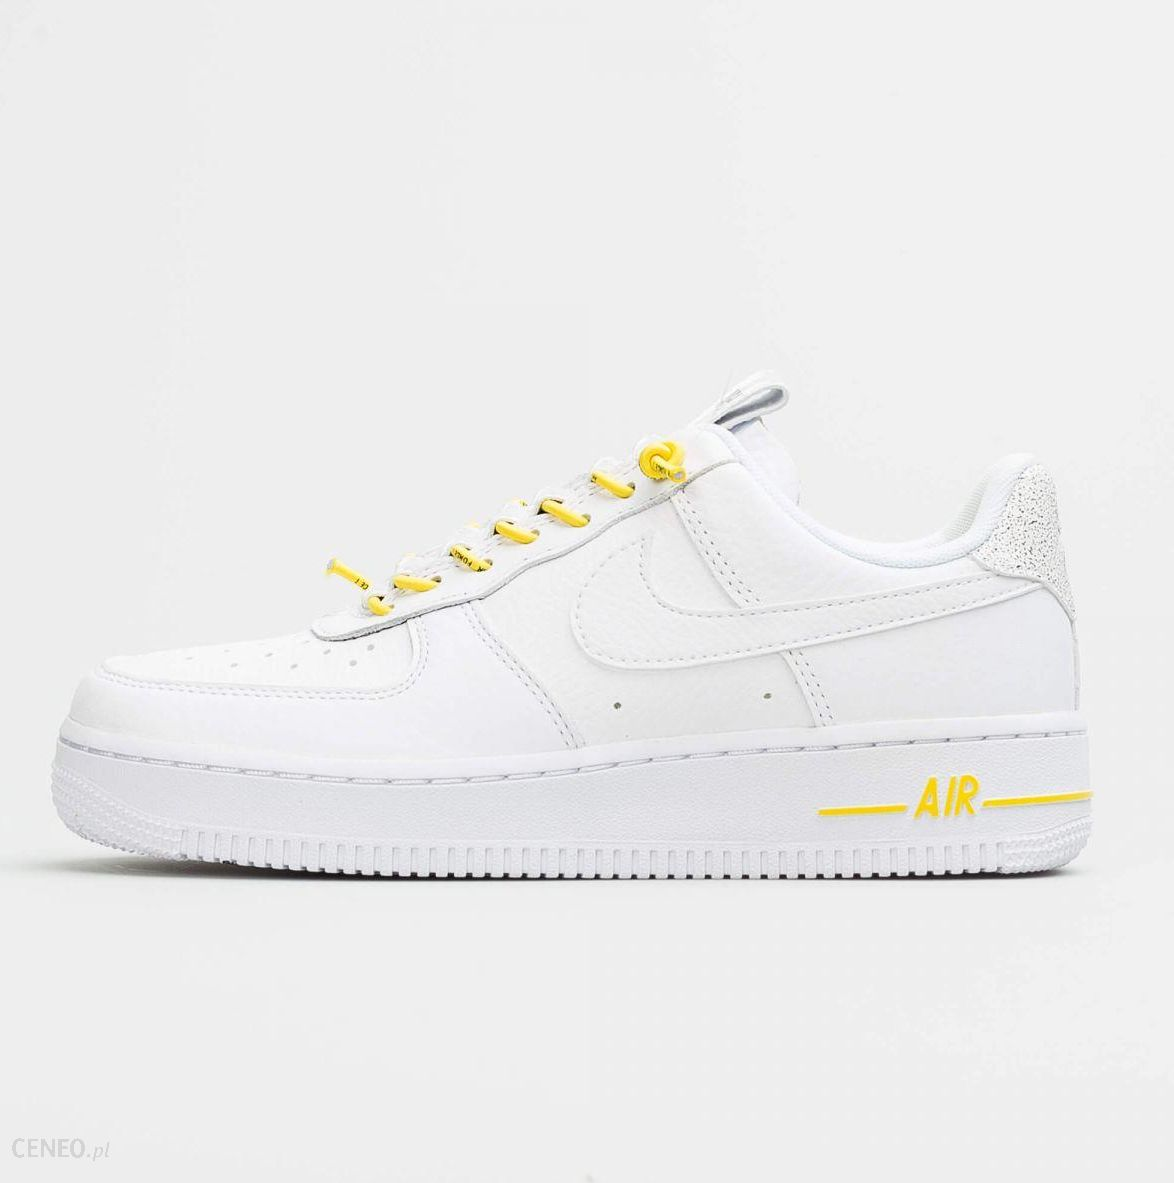 Nike WMNS AIR FORCE 1 '07 LX 898889 200 Ceny i opinie